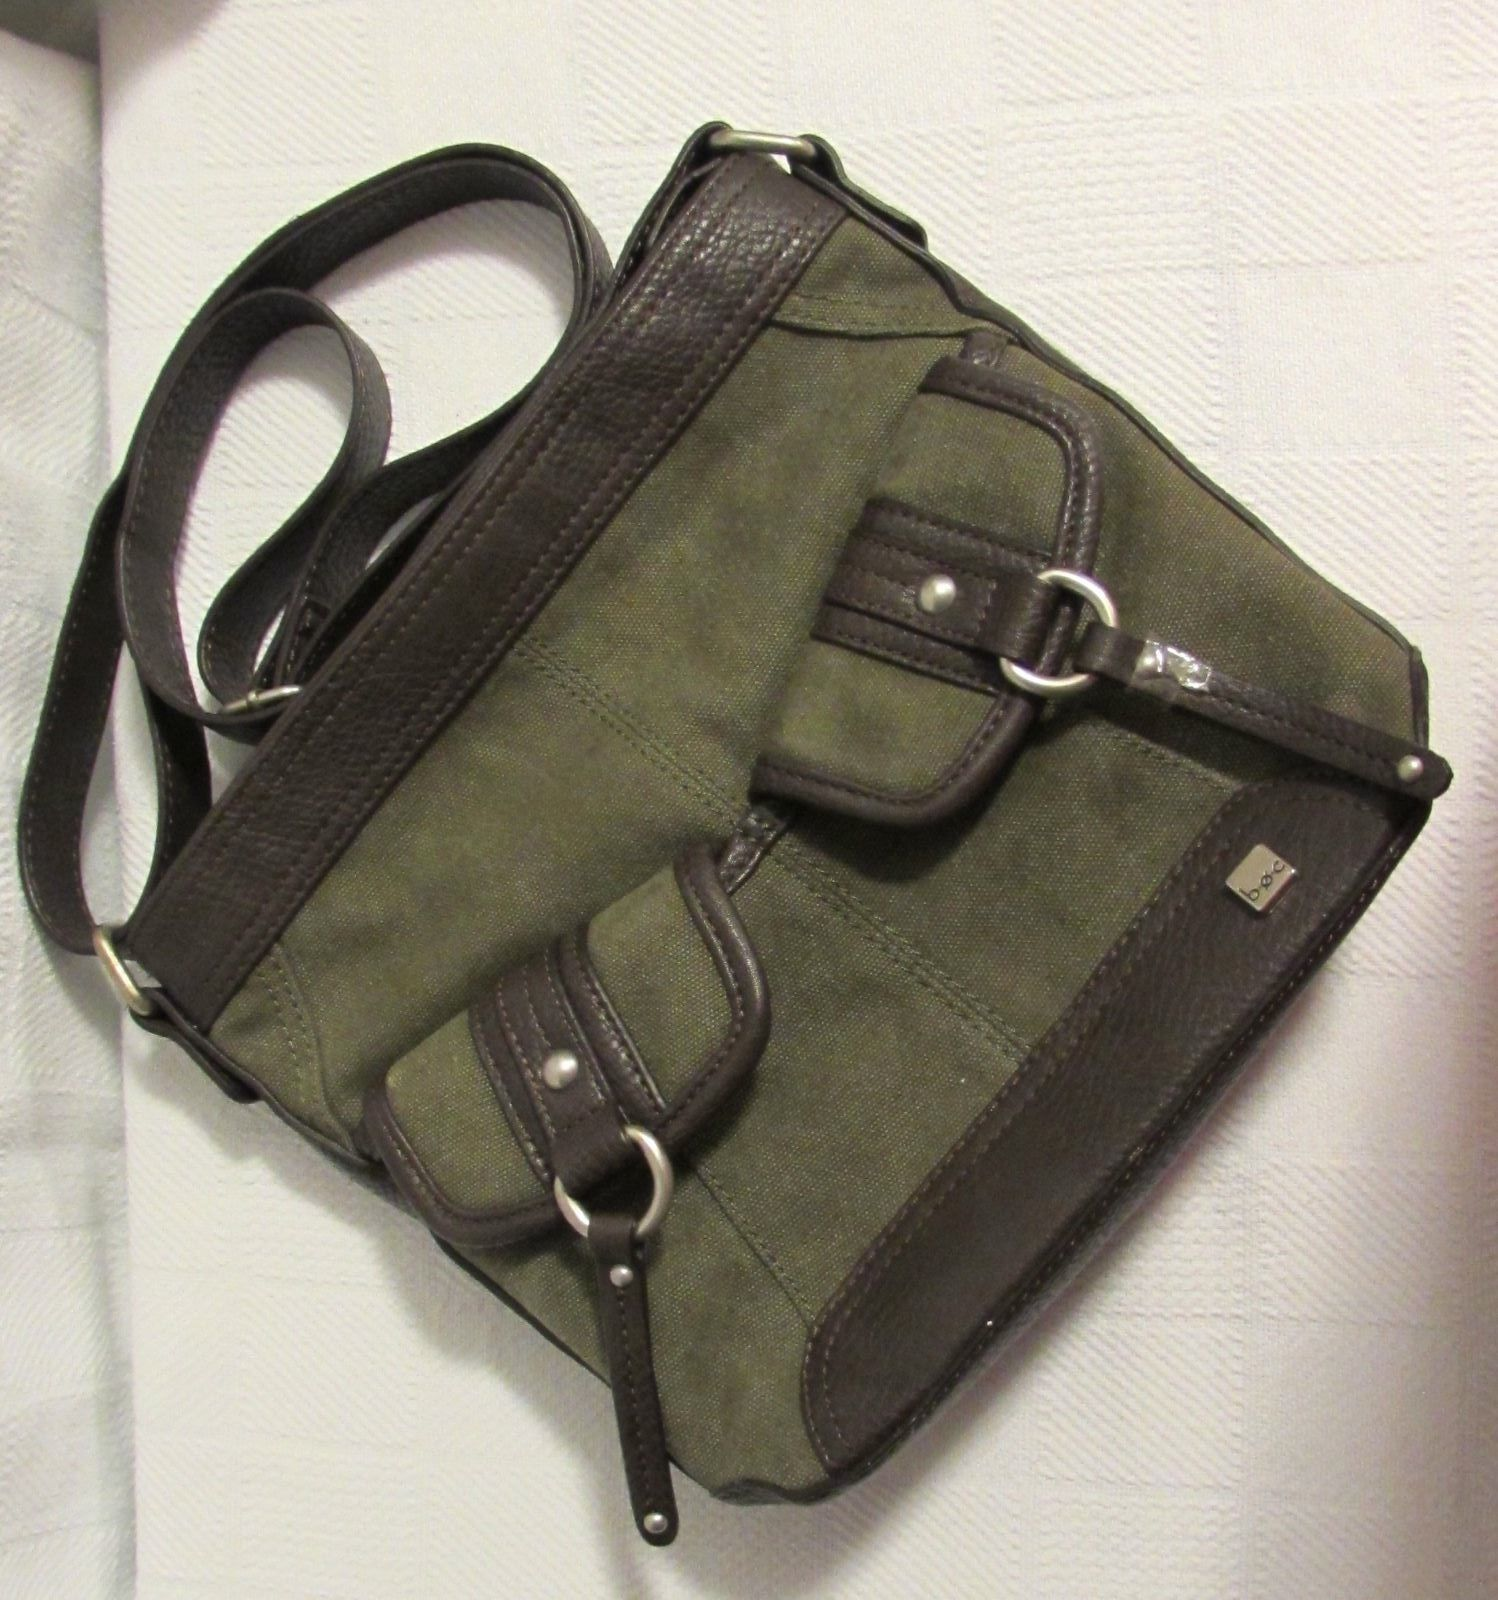 b.o.c. Women's Cargo Crossbody Shoulder Bag Green/Brown Trim Cotton/Polyester